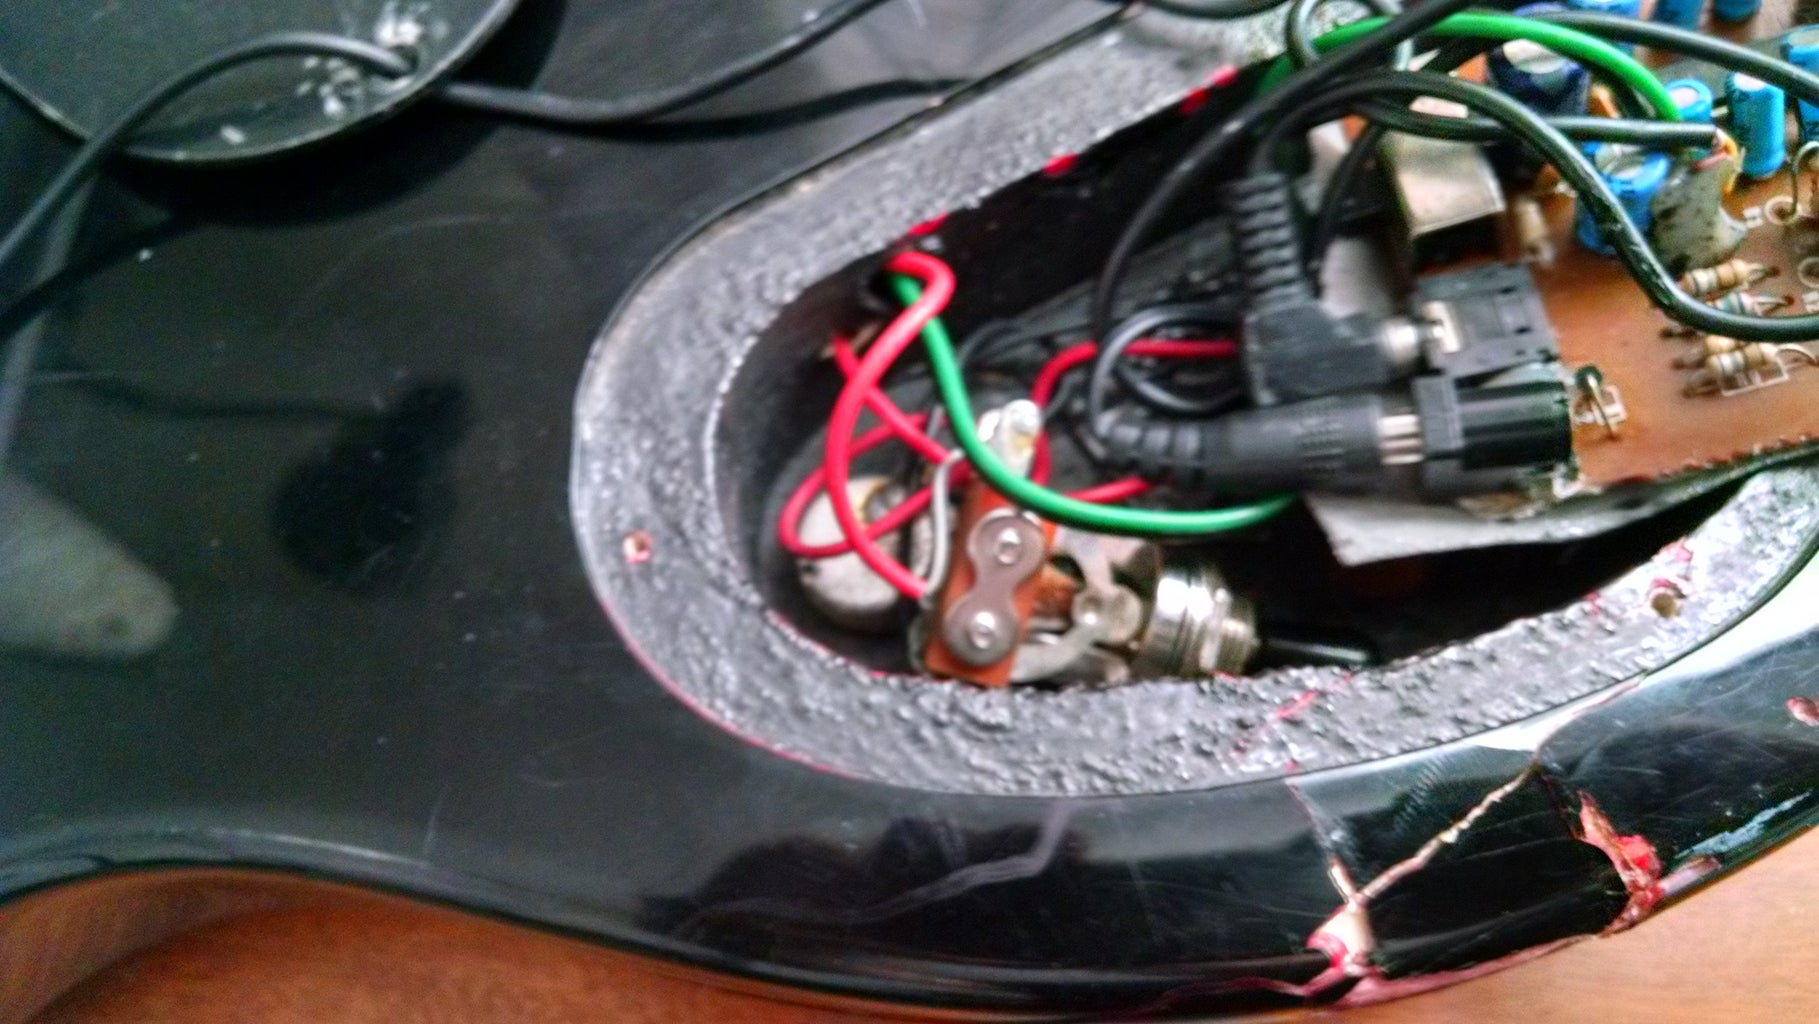 Mounting the Other Speaker